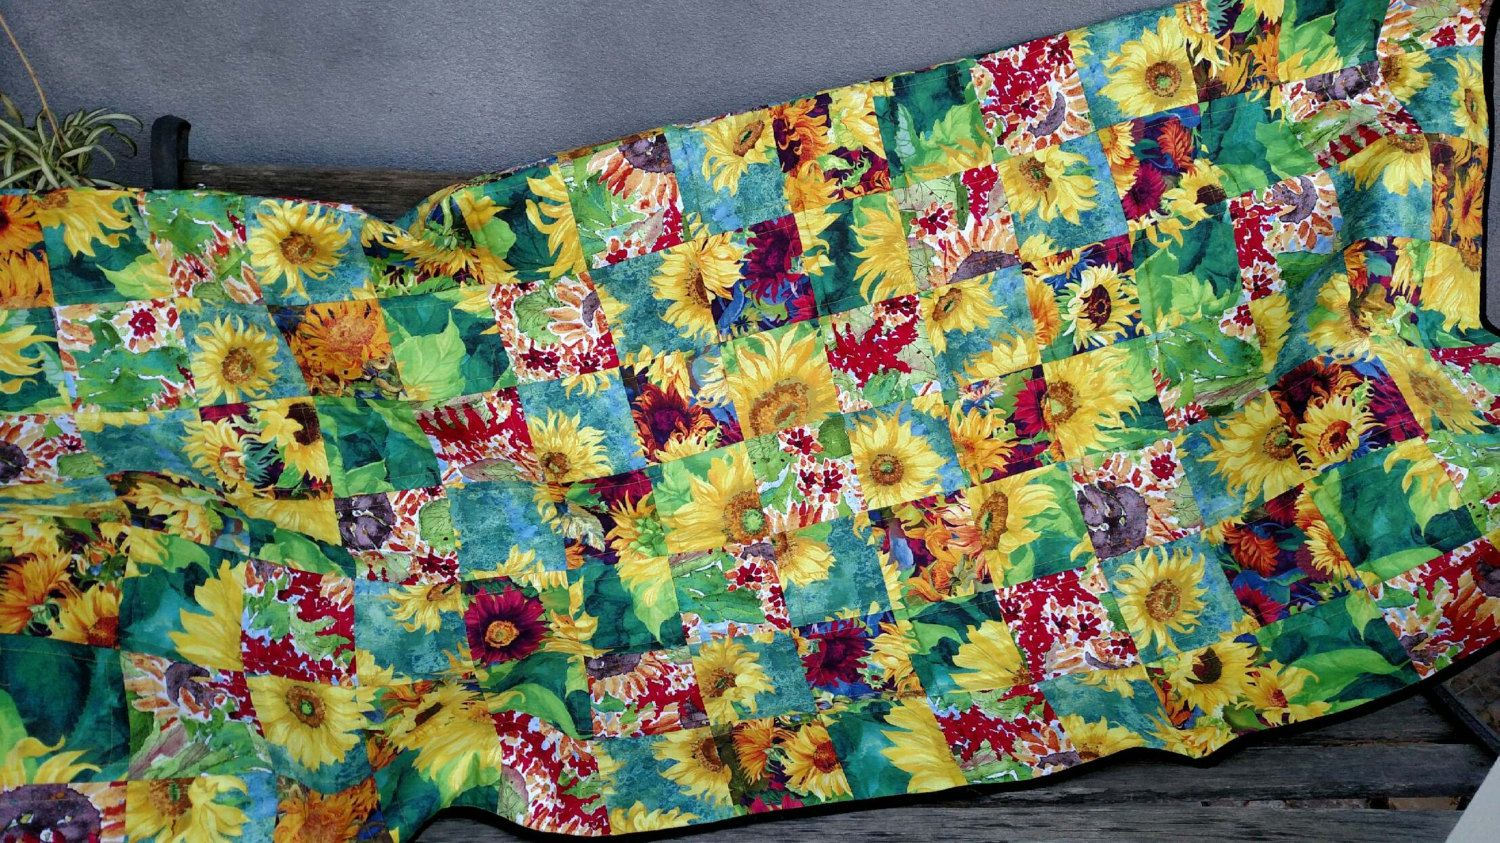 Sunflowers Quilt  Handmade Quilt, Unique Gift Item, Ready to Ship by BermudaStreetQuilts on Etsy